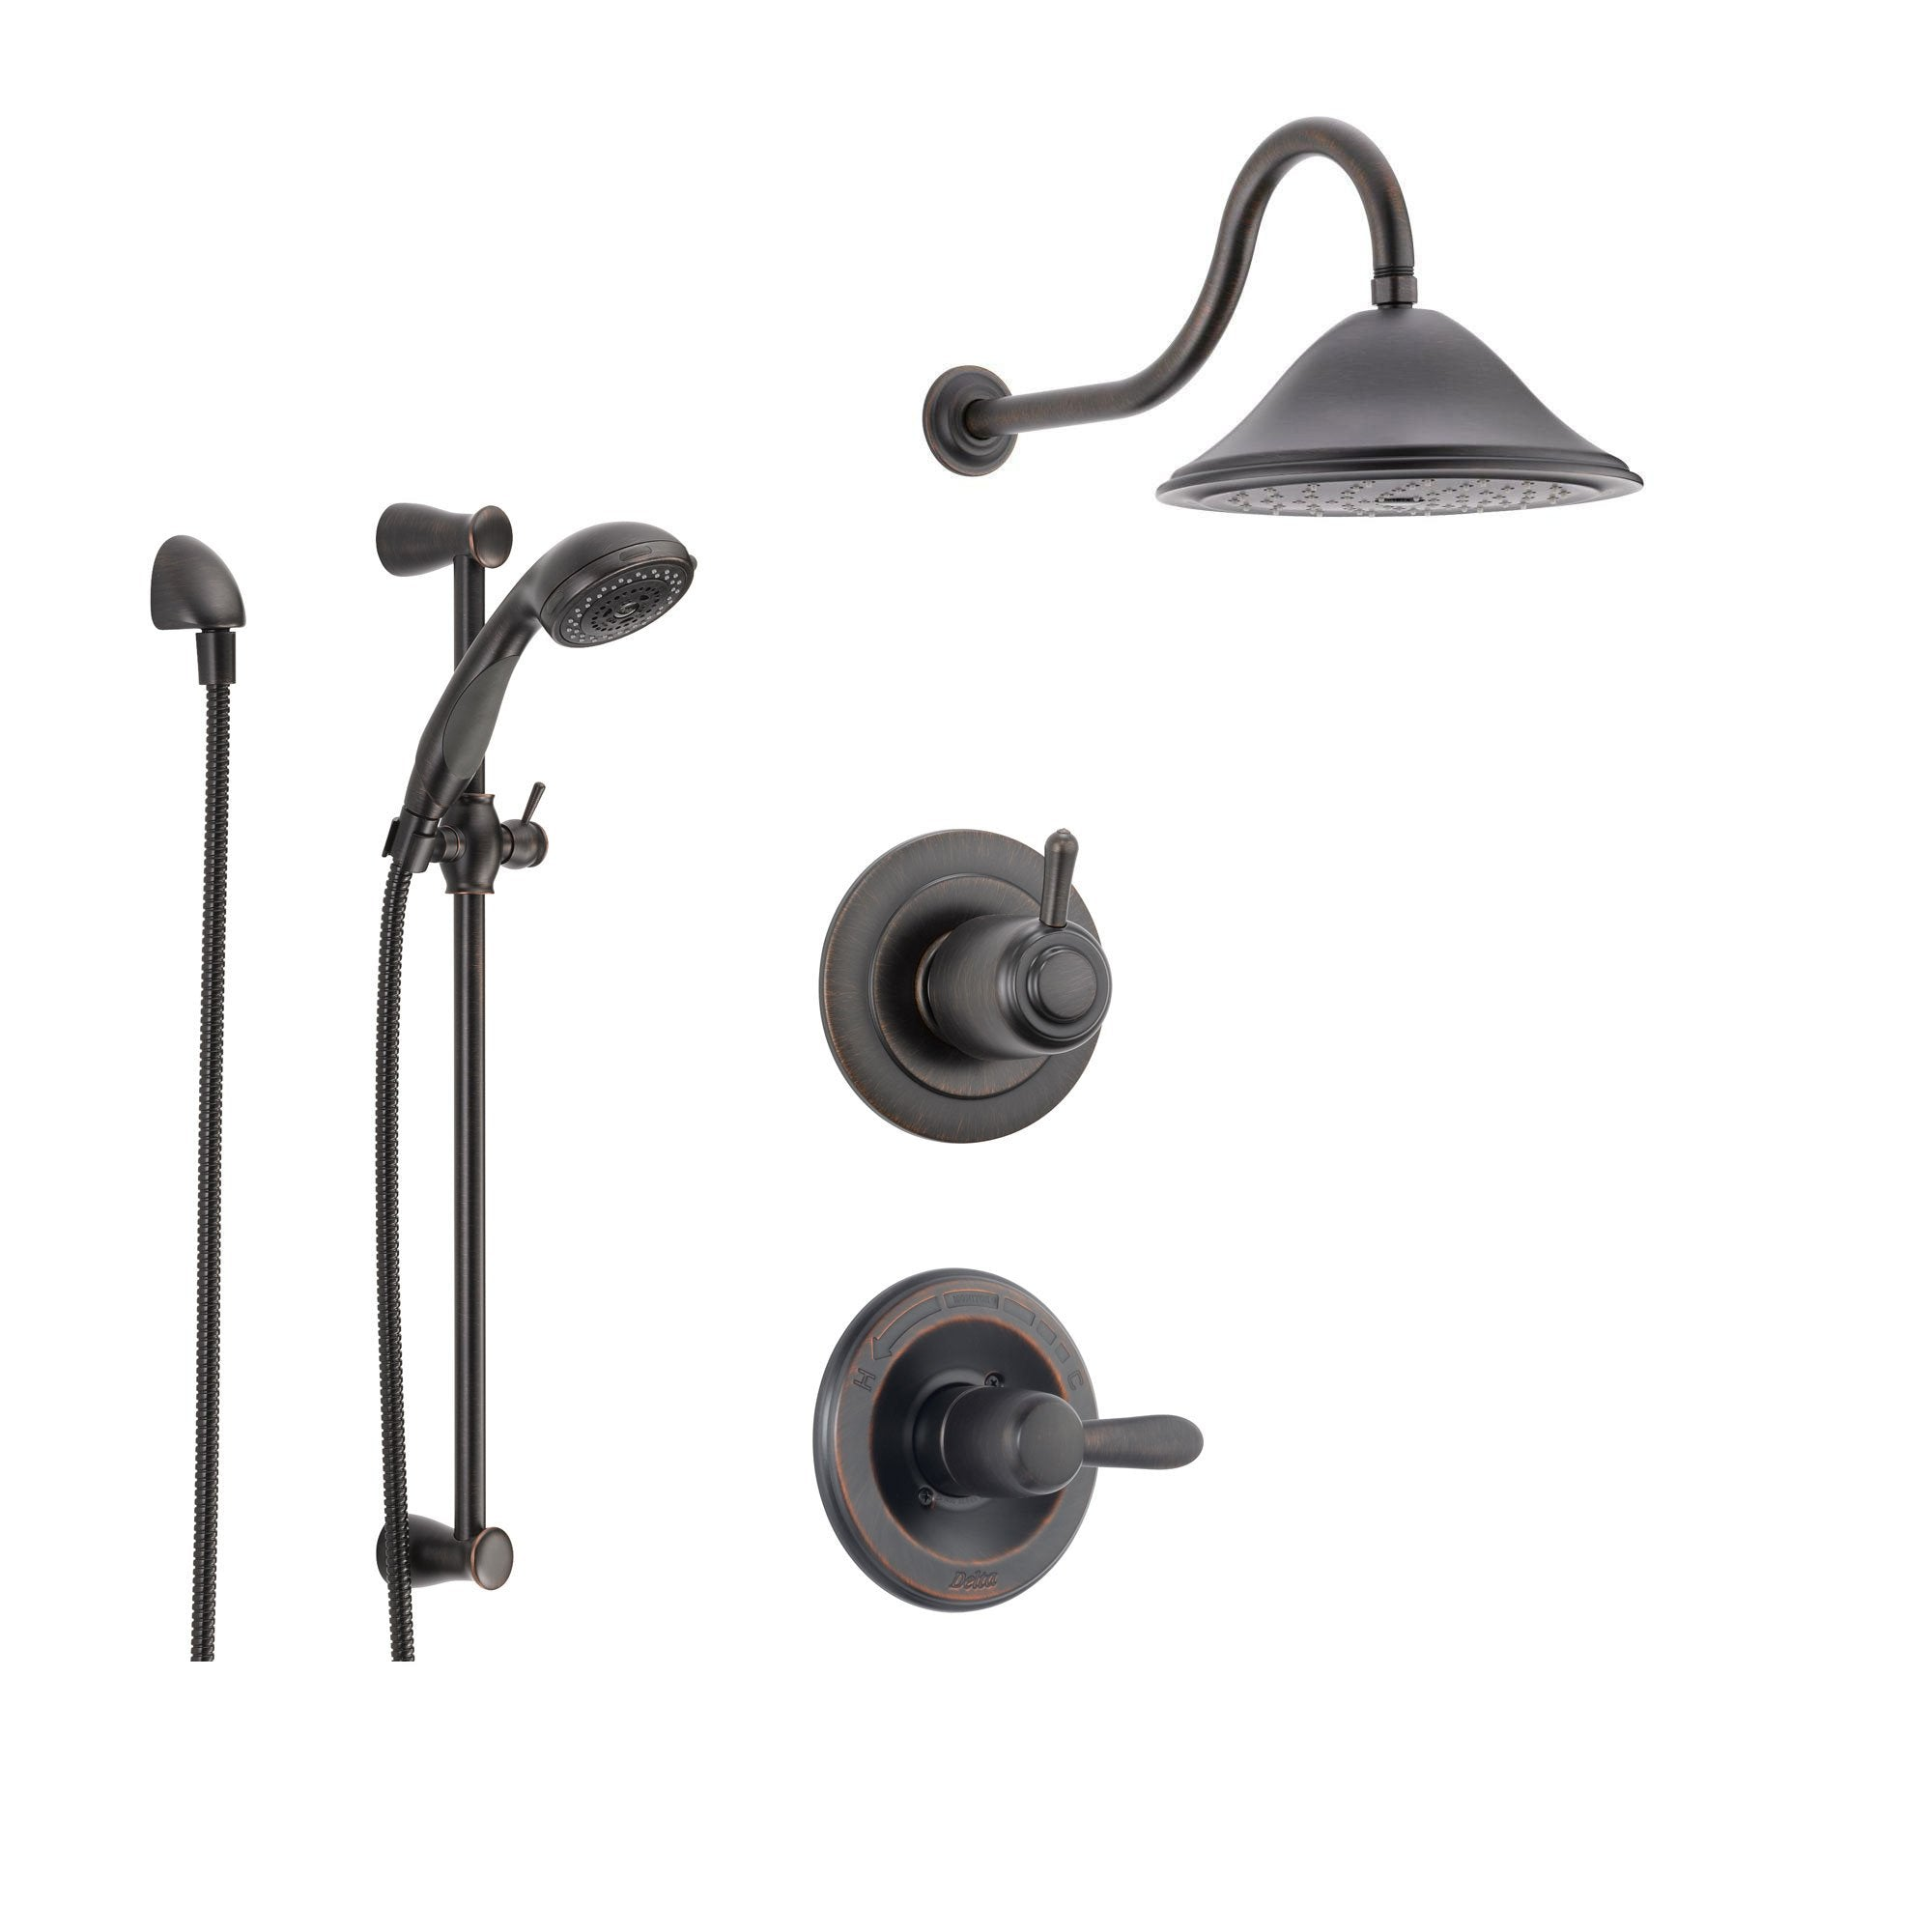 Delta Lahara Venetian Bronze Shower System with Normal Shower Handle, 3-setting Diverter, Large Rain Showerhead, and Handheld Shower SS143881RB